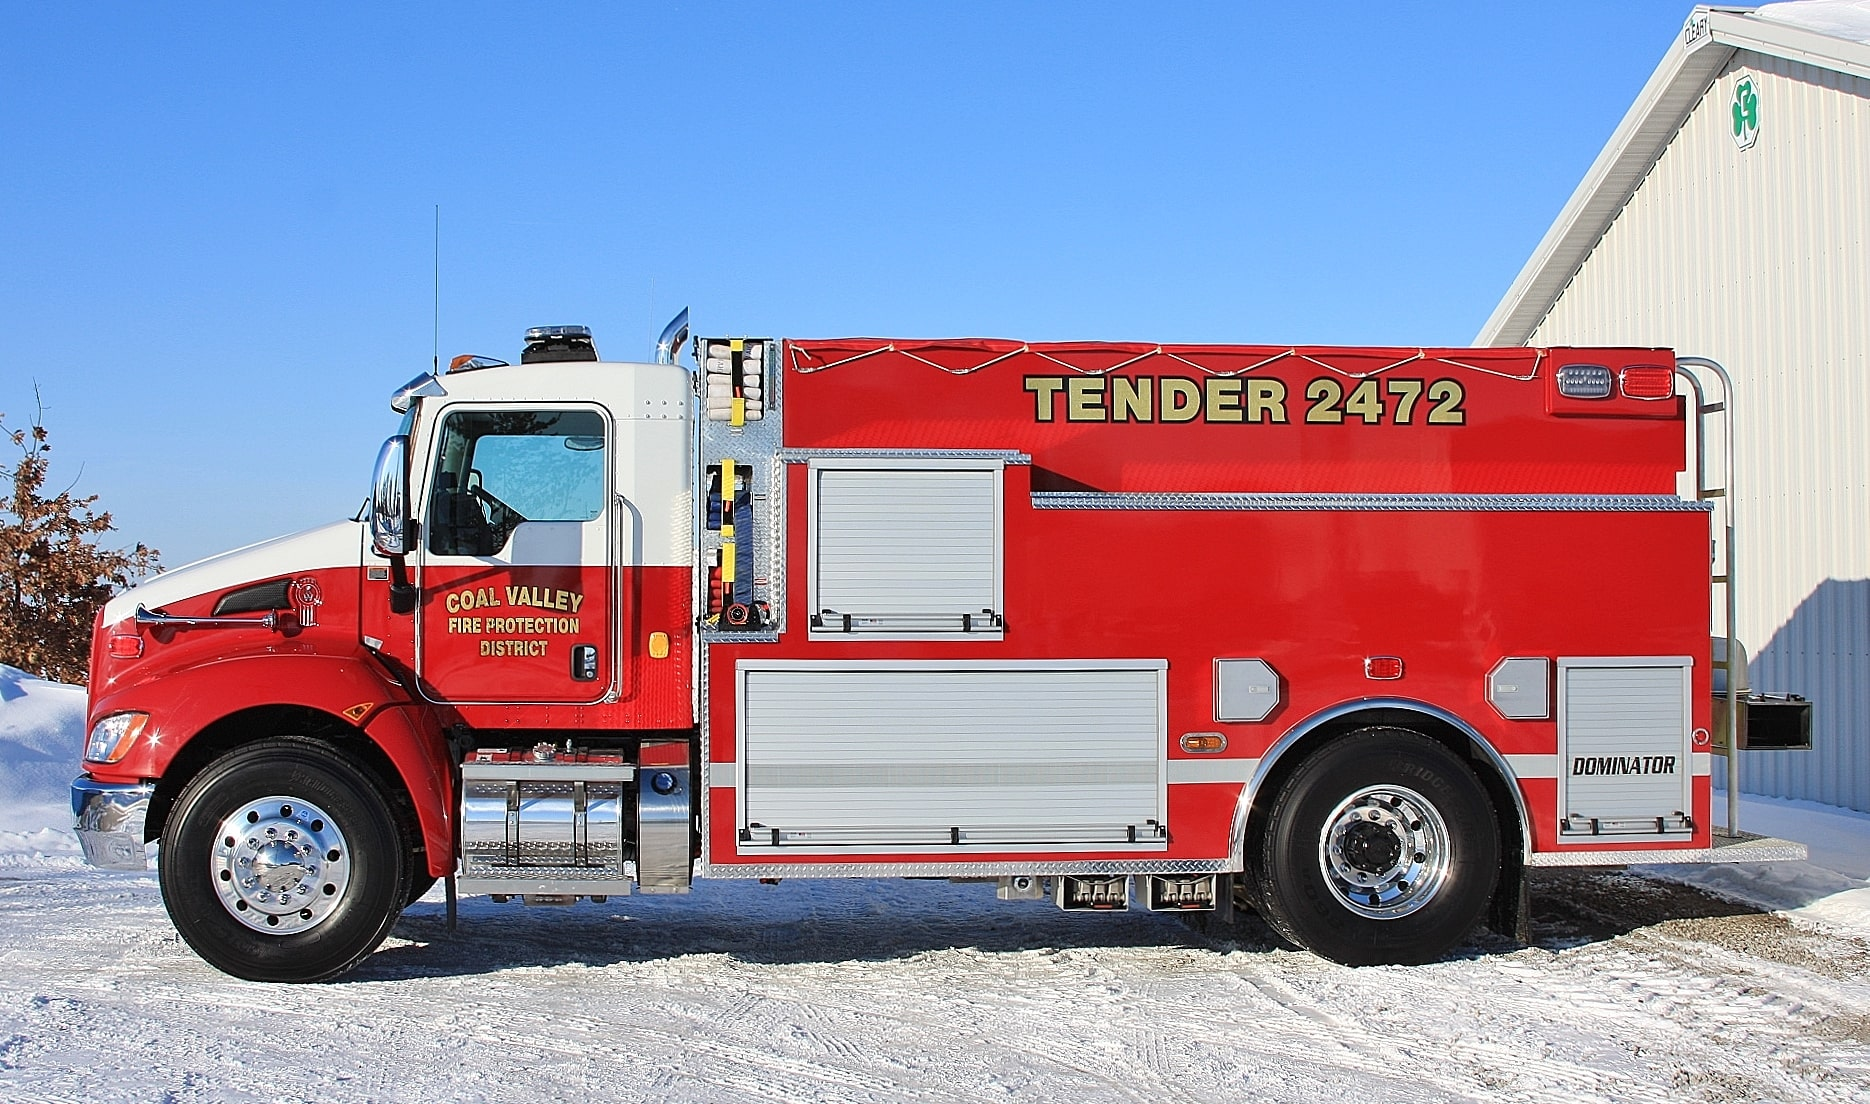 Coal Valley fire apparatus fire tanker